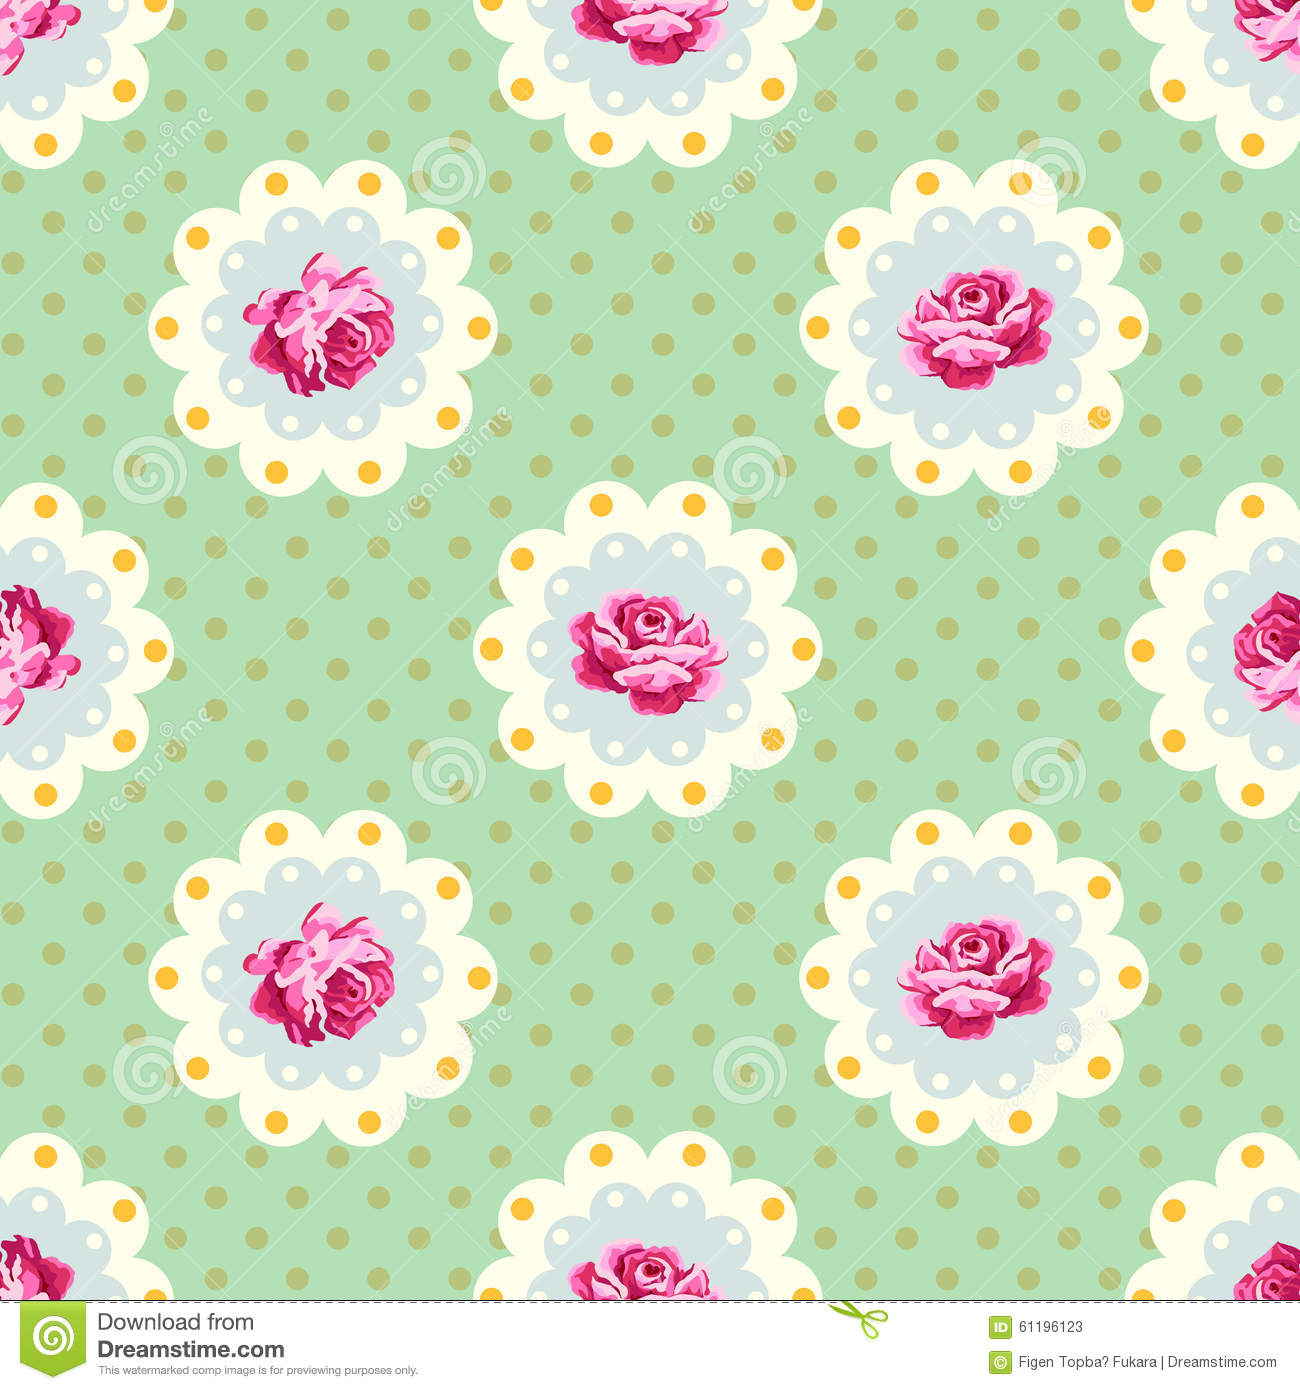 Shabby Chic Rose Pattern Stock Vector Image 61196123